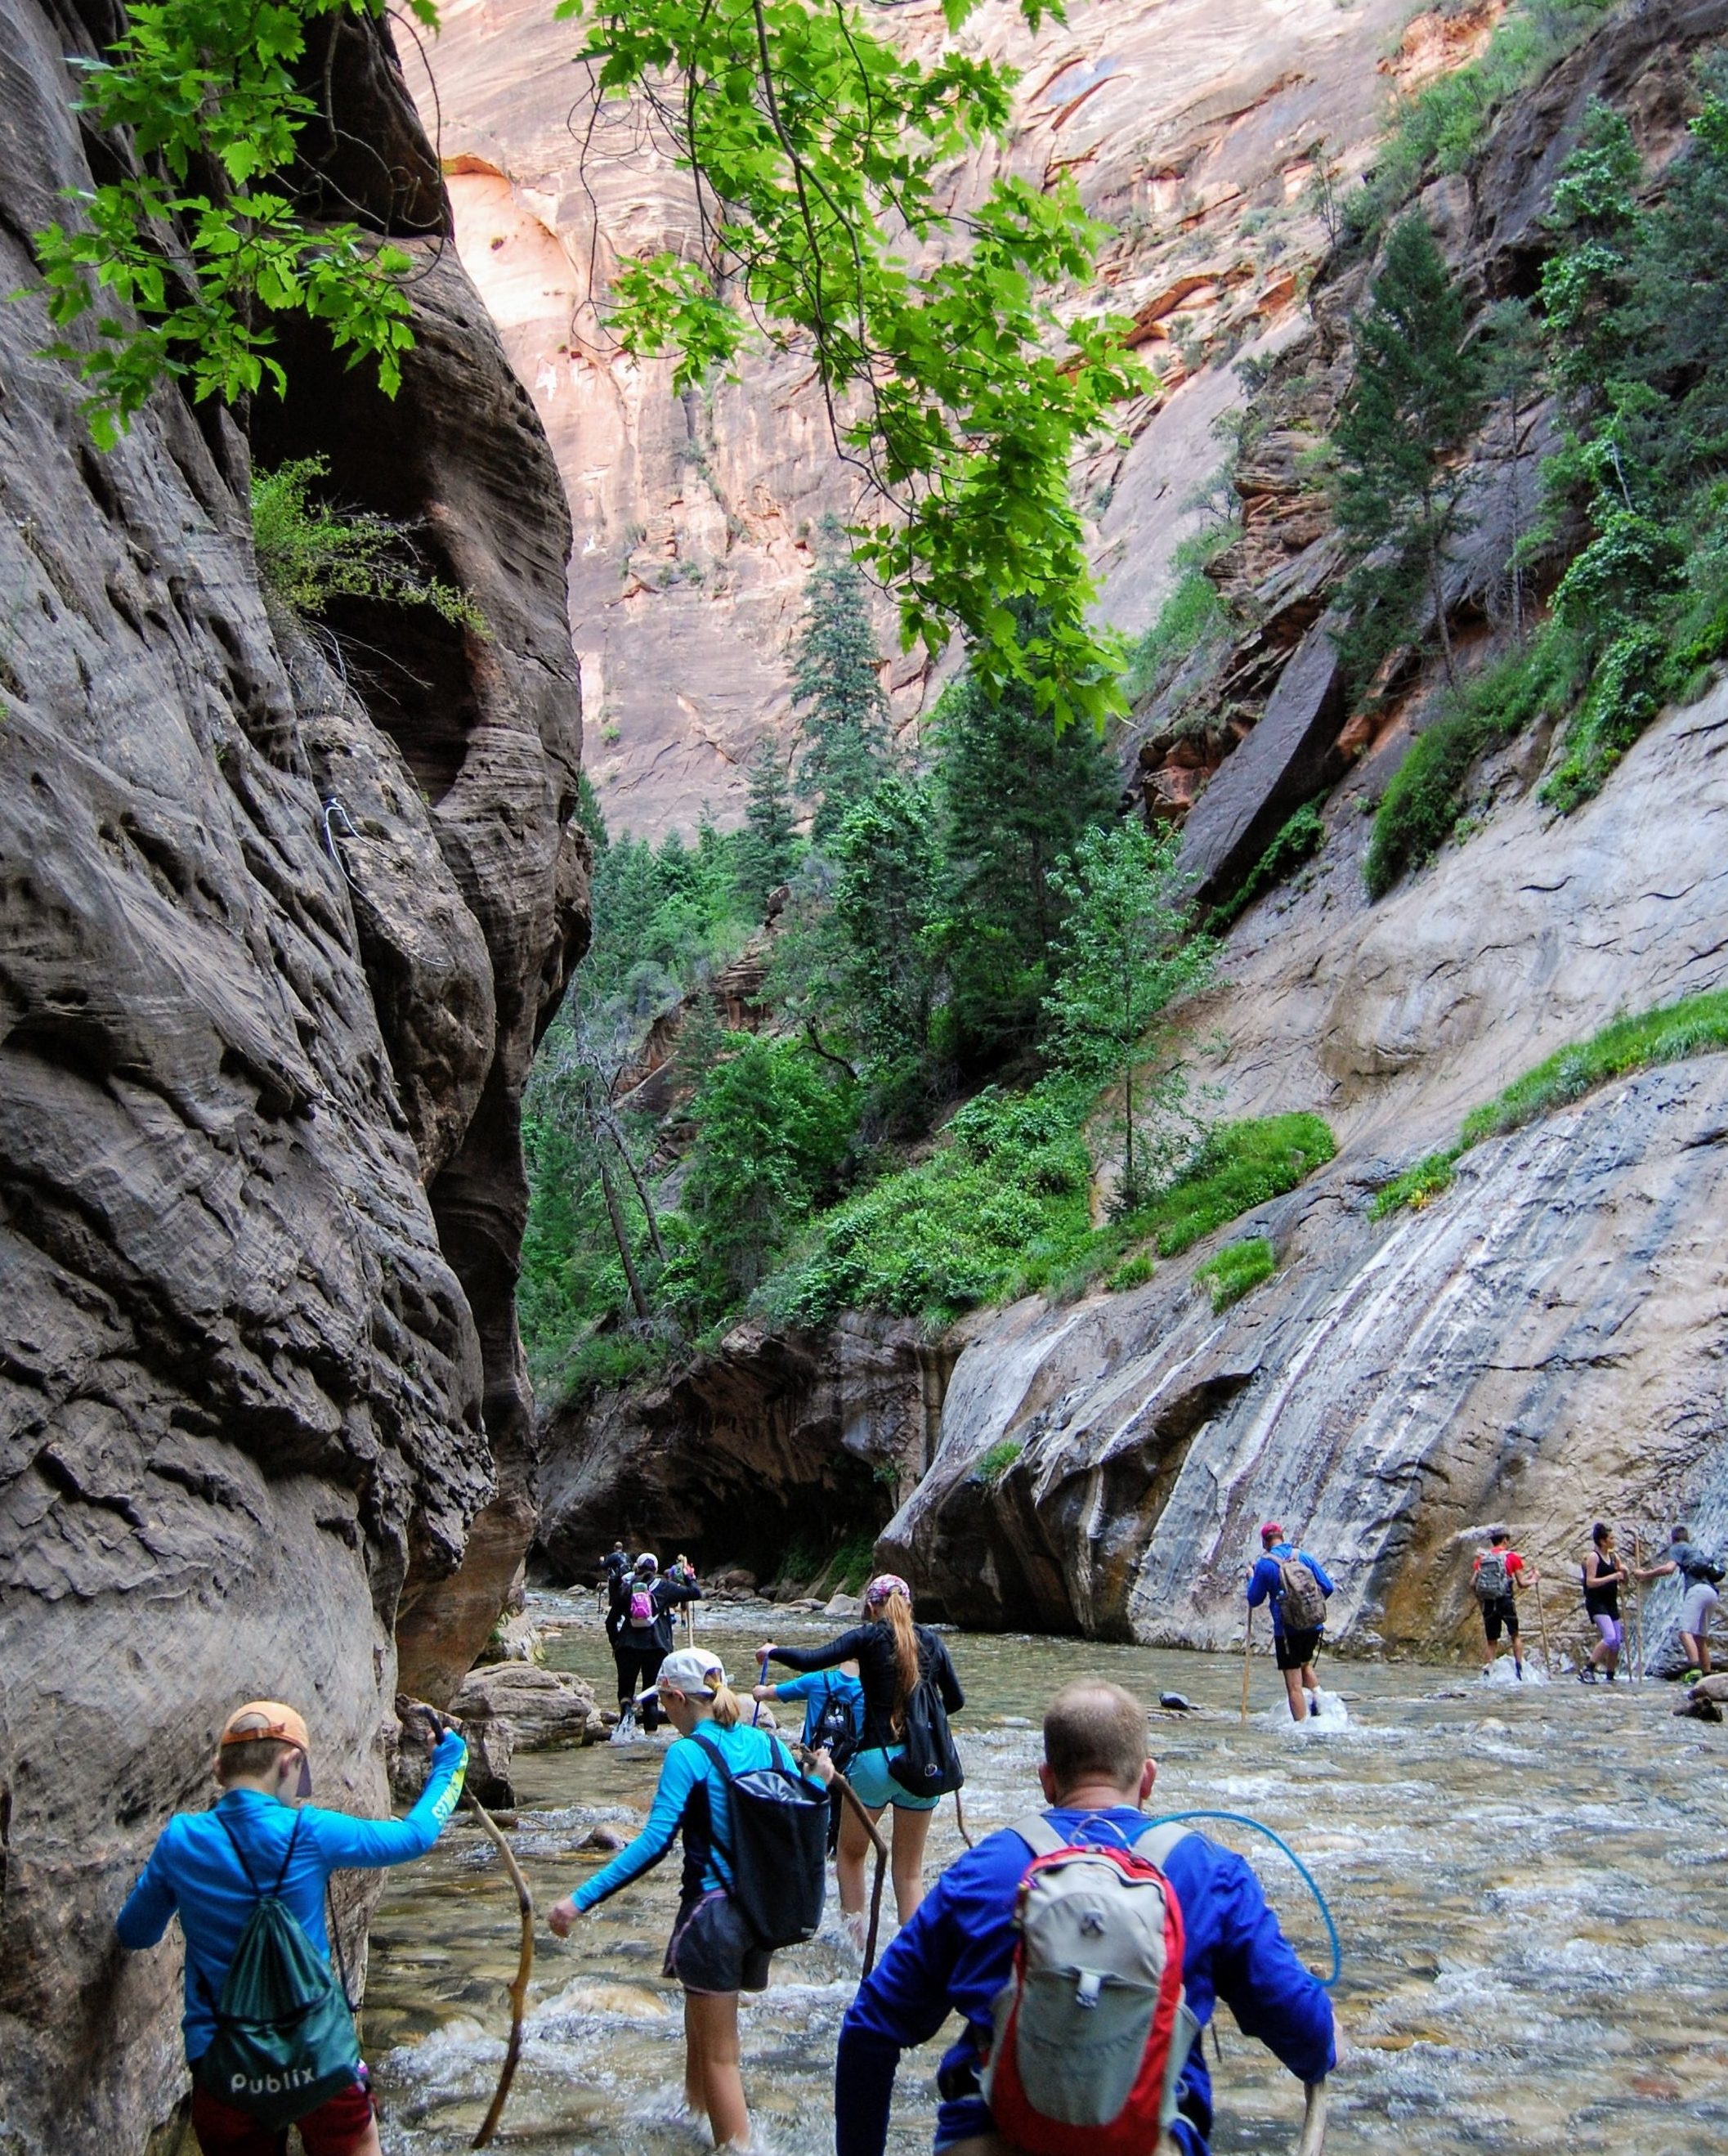 Conquering The Narrows in Zion National Park. The Osprey held the important stuff (like food) which is why an adult carried it.